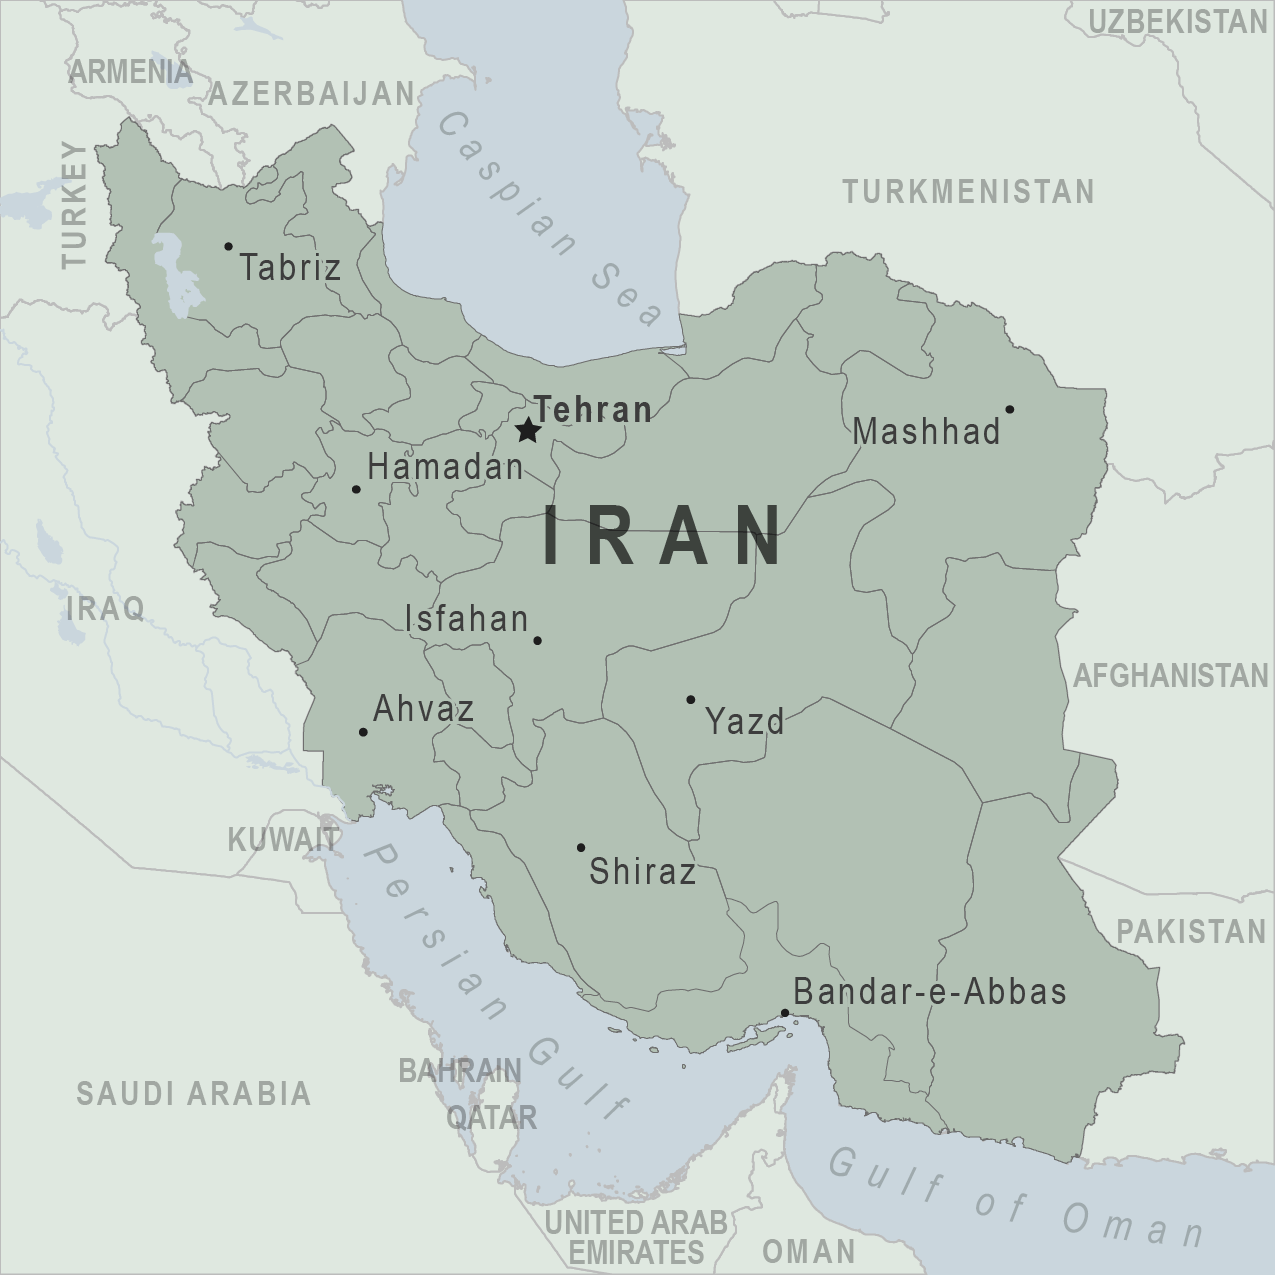 https://i2.wp.com/wwwnc.cdc.gov/travel/images/map-iran.png